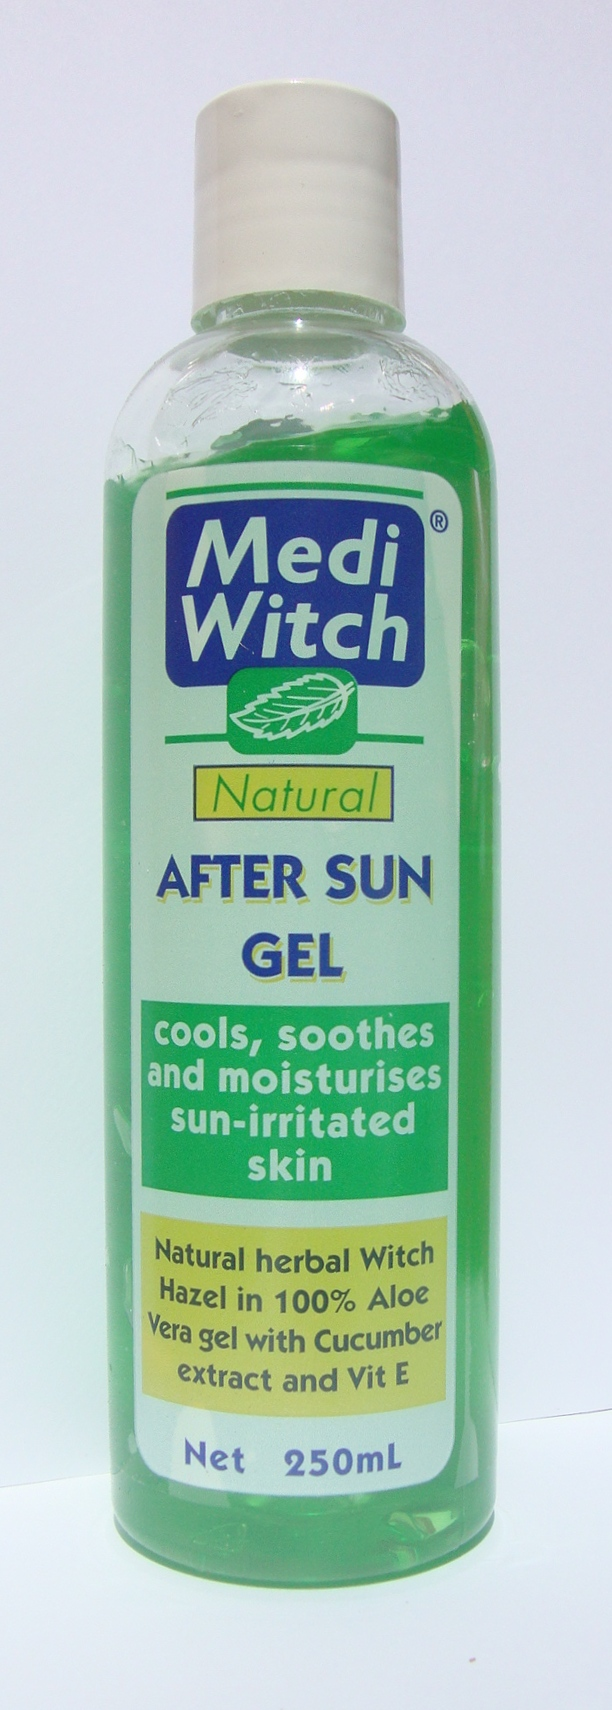 Mediwitch after sun Gel 250mL